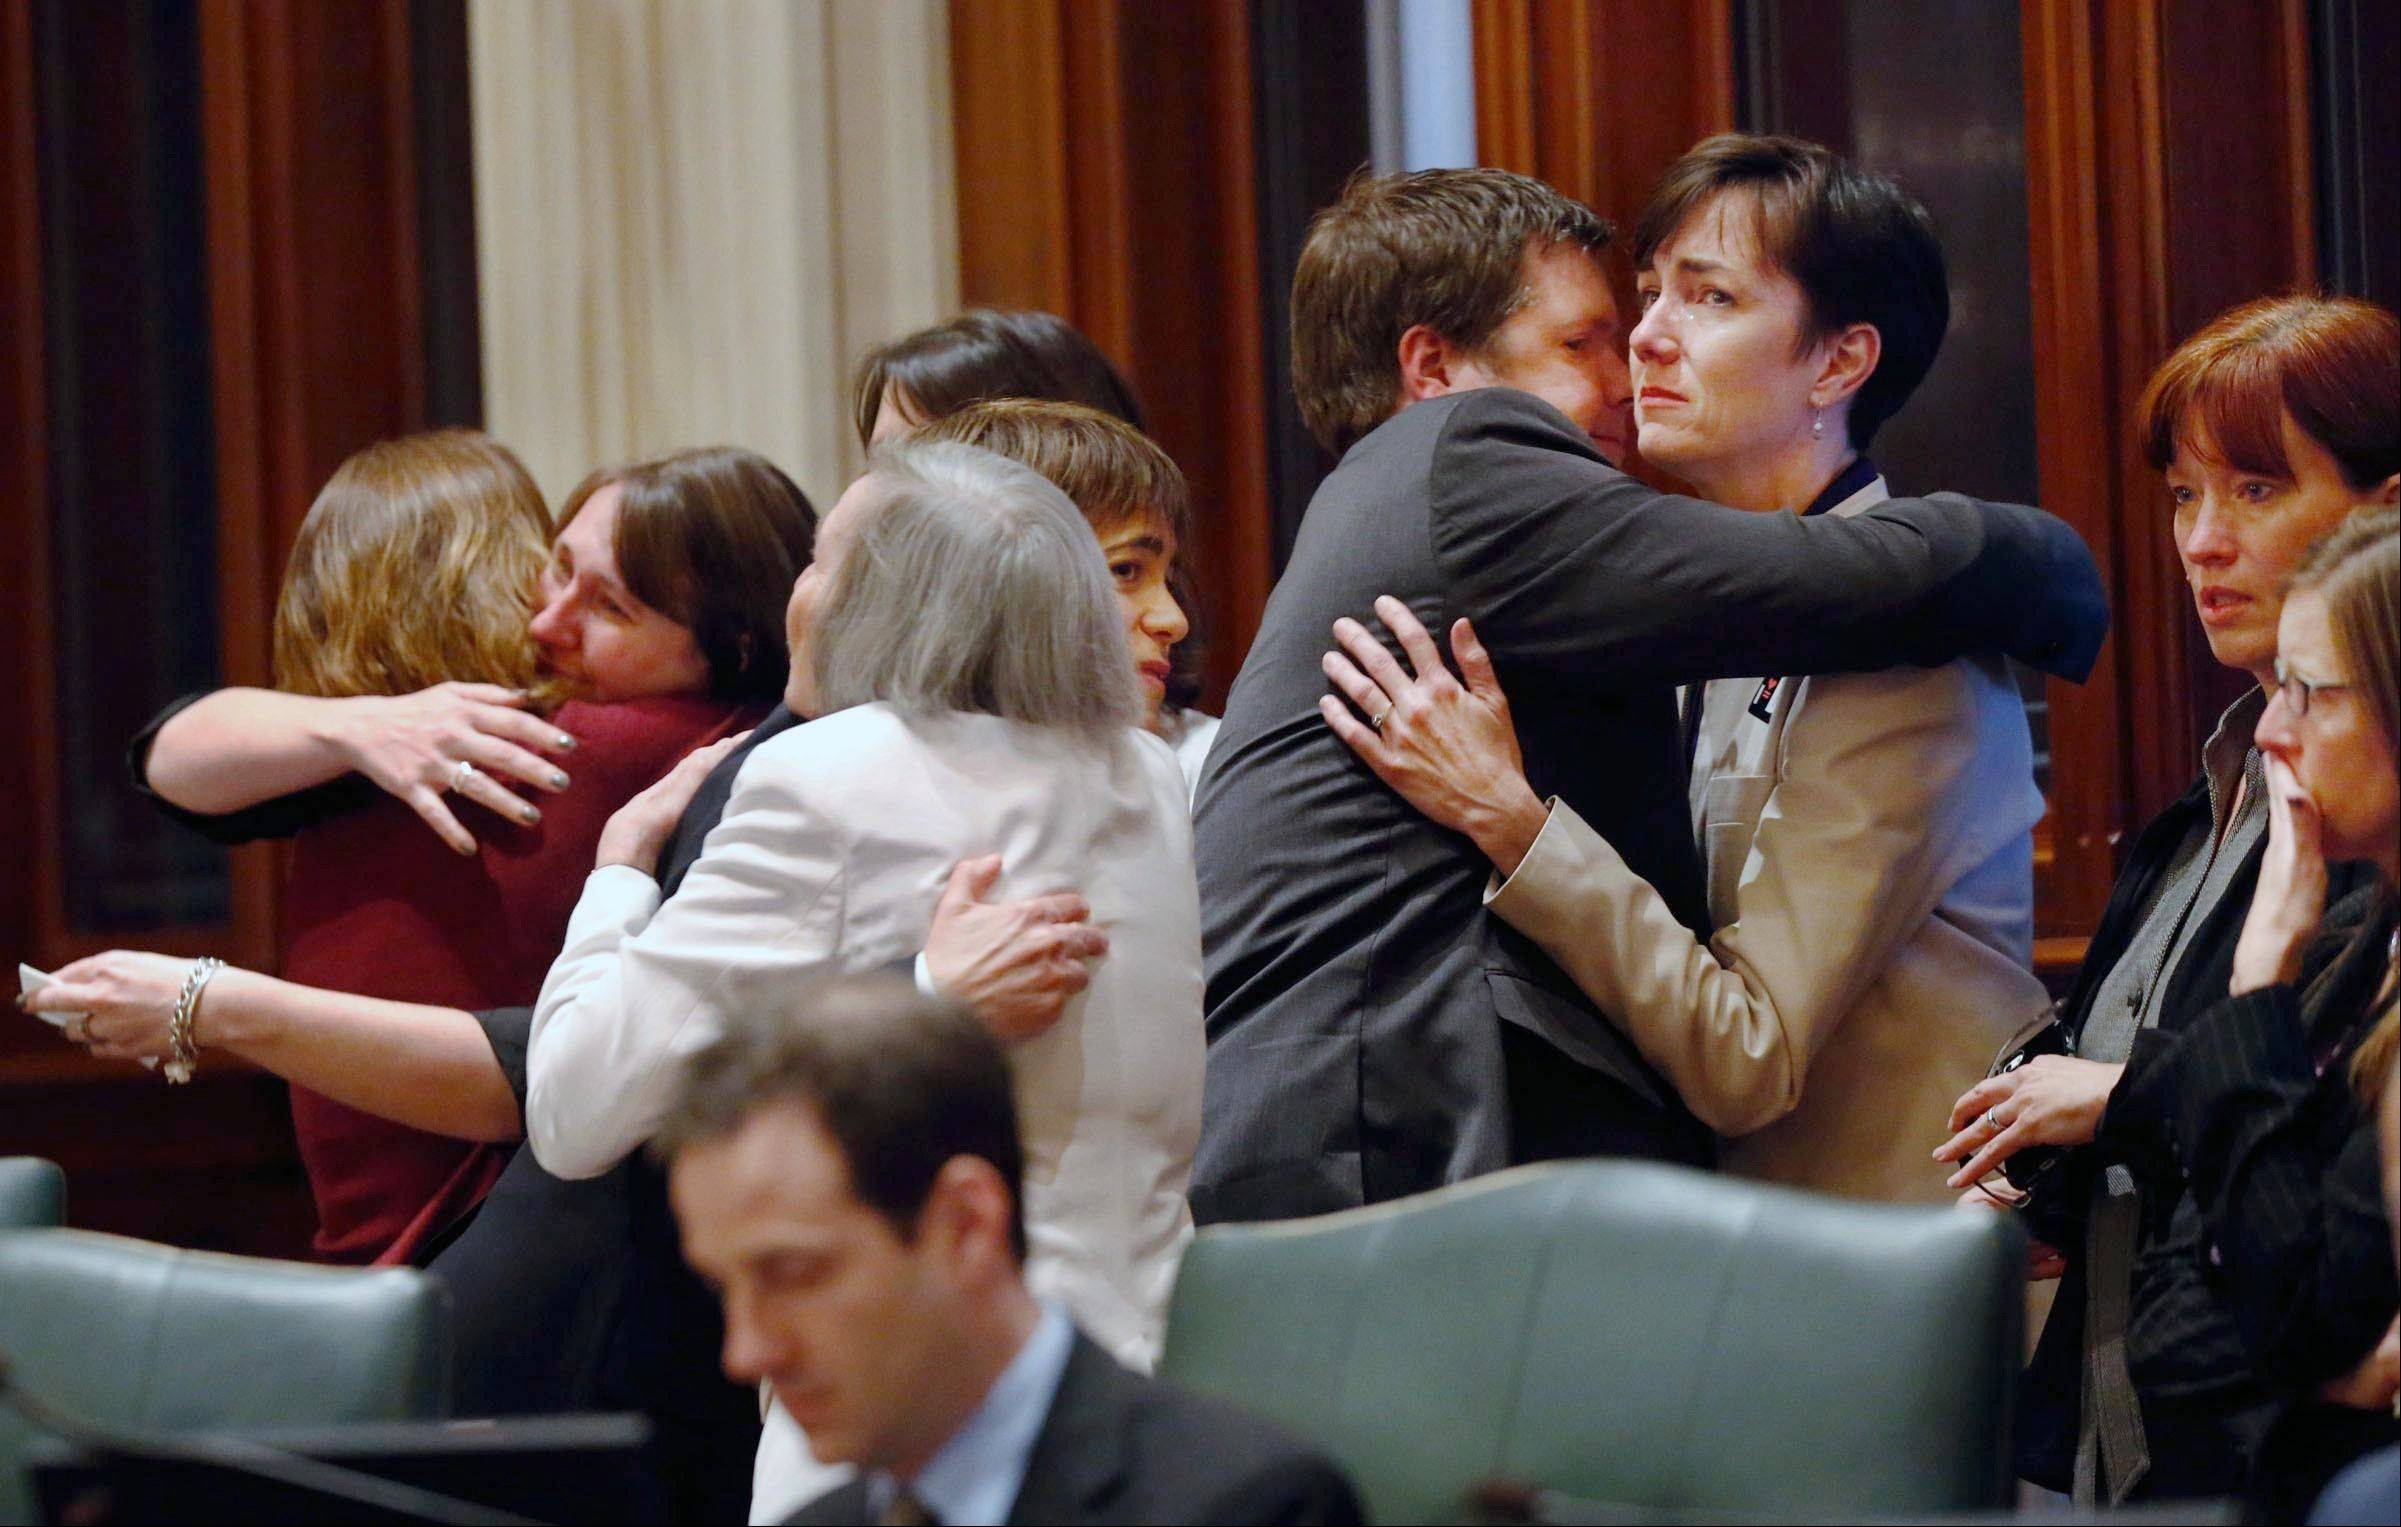 Rep. Kelly Cassidy, D-Chicago, right, and other supporters of gay marriage are consoled by friends and colleagues after a bill legalizing gay marriage in Illinois wasnít called for a vote Friday, May 31, 2013 in Springfield, Ill. (AP Photo/The State Journal-Register, Ted Schurter)